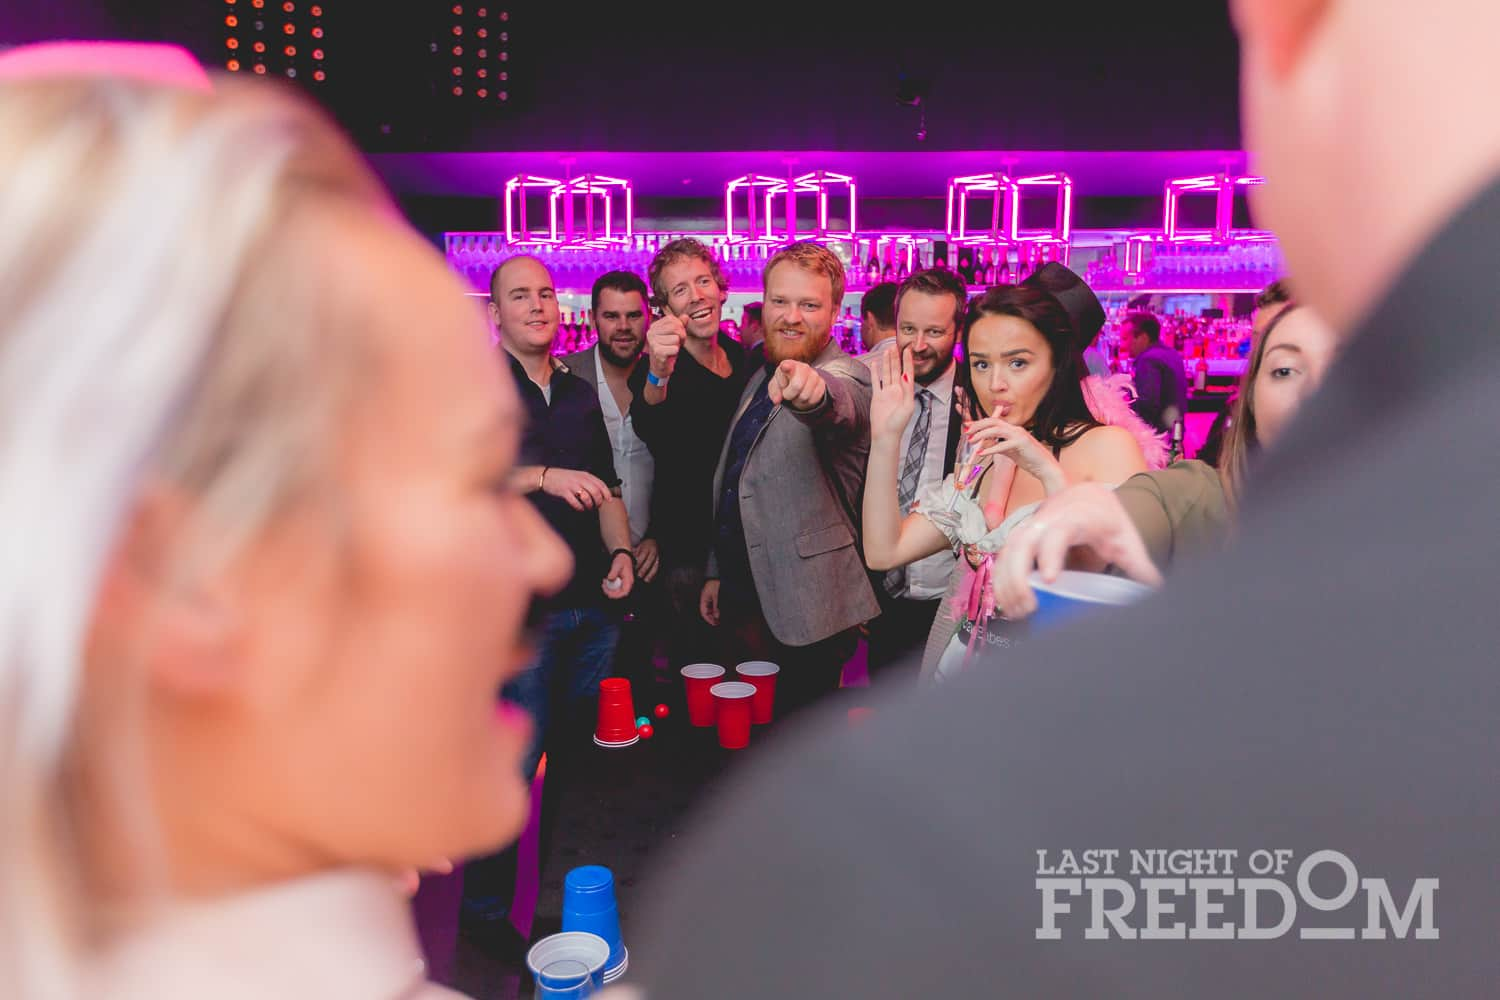 A shot through two people, showing people pointing and playing beer pong in a bar